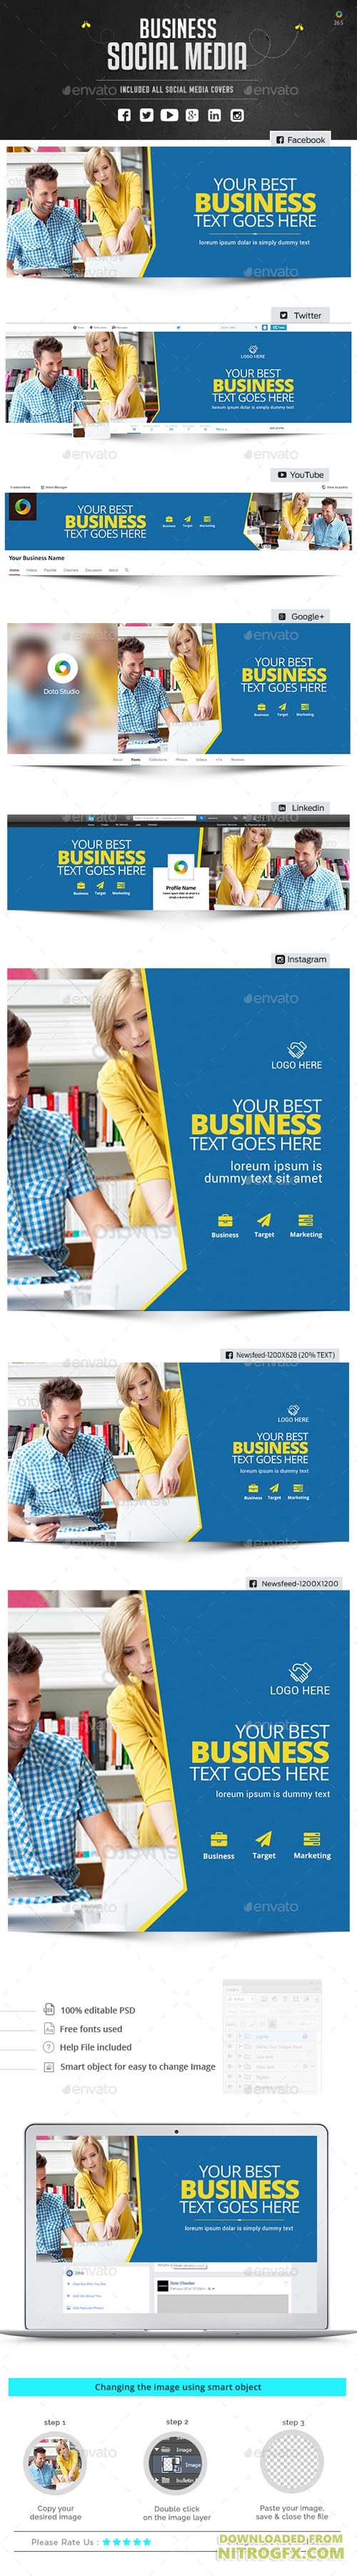 Business Social Media Package 20950048